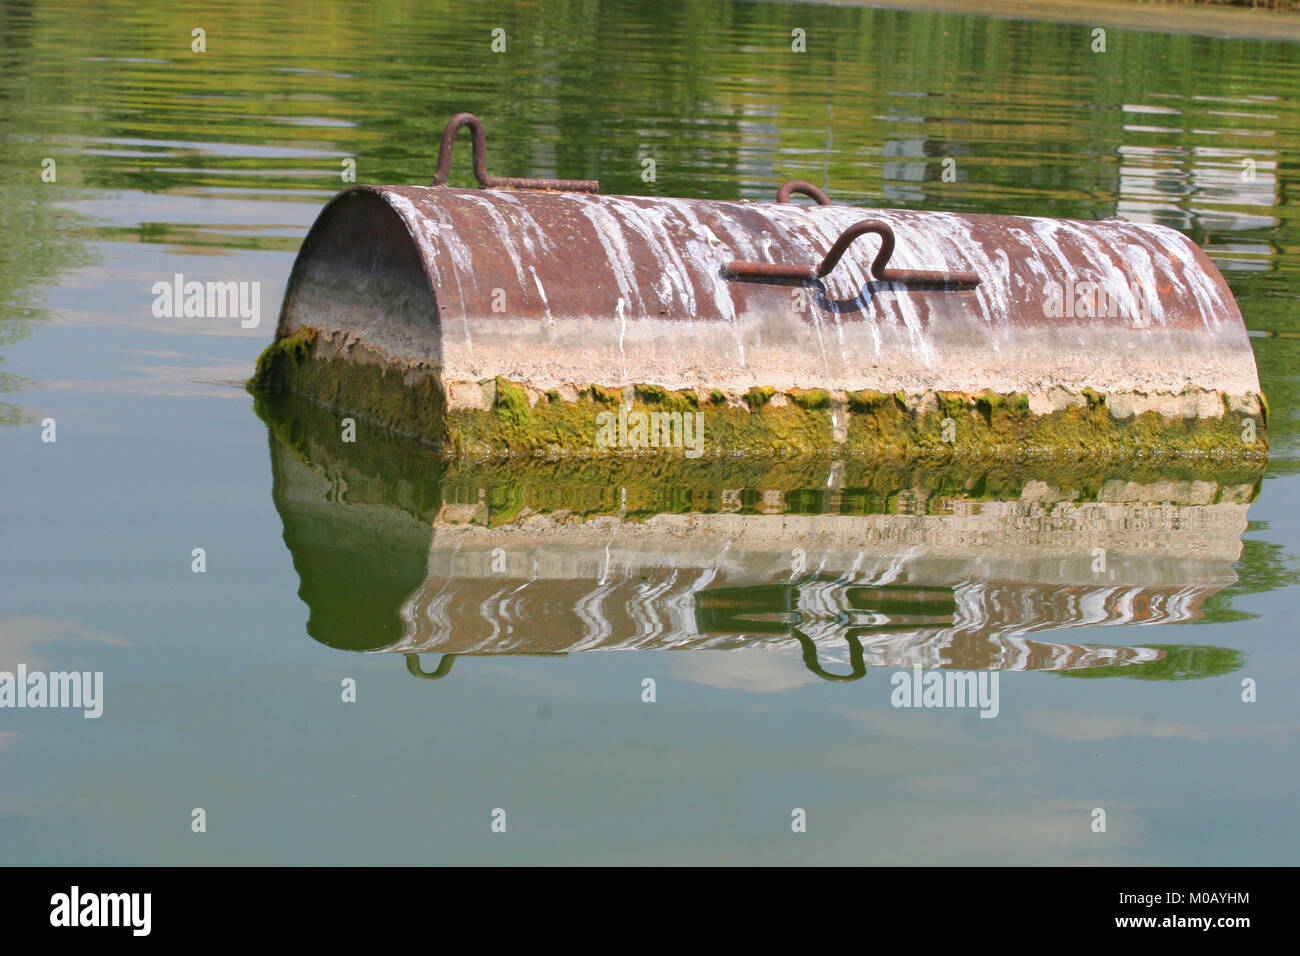 Industrial barrel thrown into the lake for garbage and make a big pollution. Water pollution. Climate changes. Industry - Stock Image